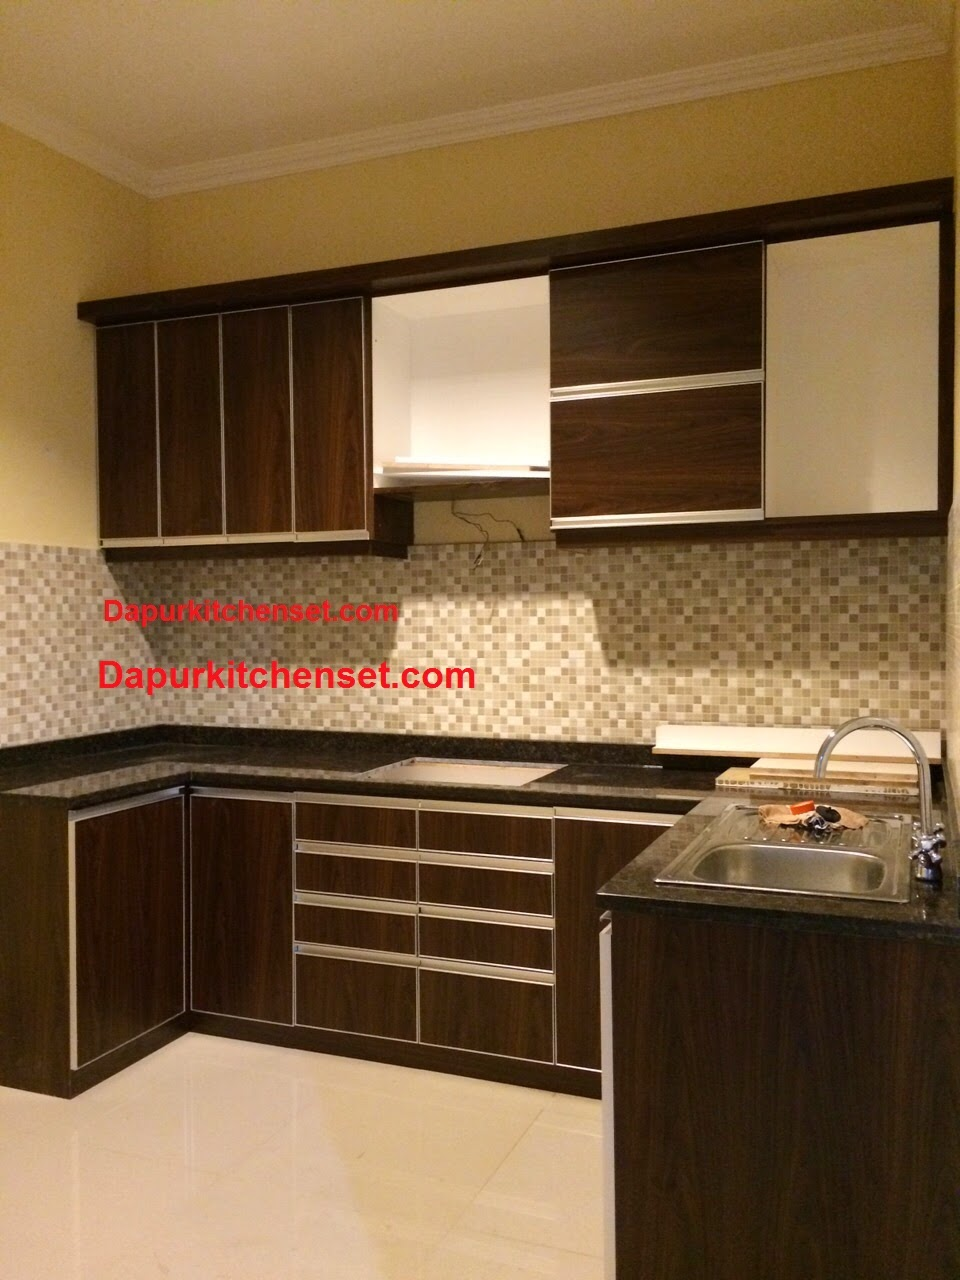 Jasa kitchen set bekasi murah for Harga kitchen set per meter